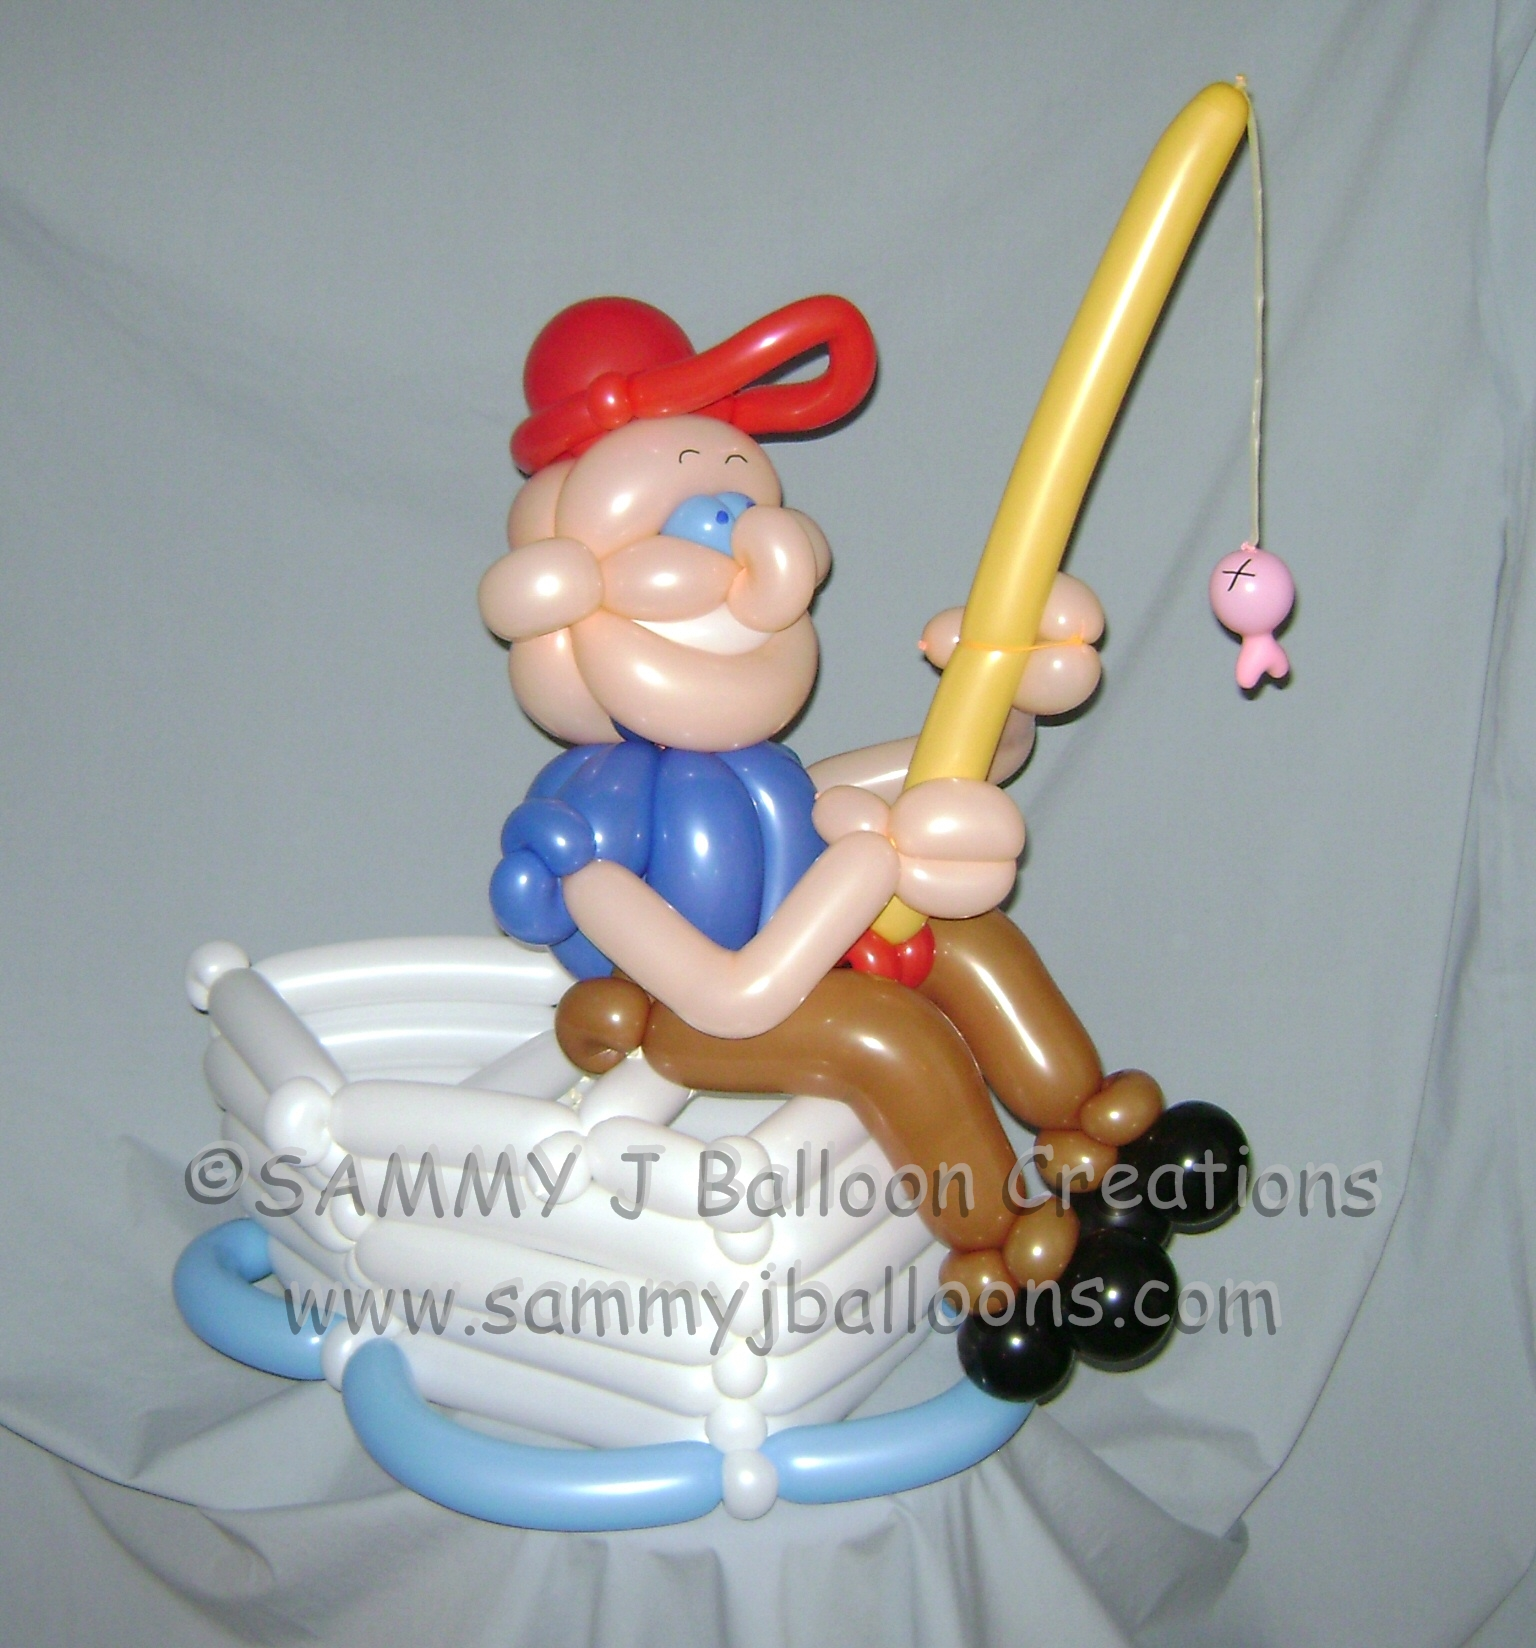 SAMMY J Balloon Creations st louis balloons fishing